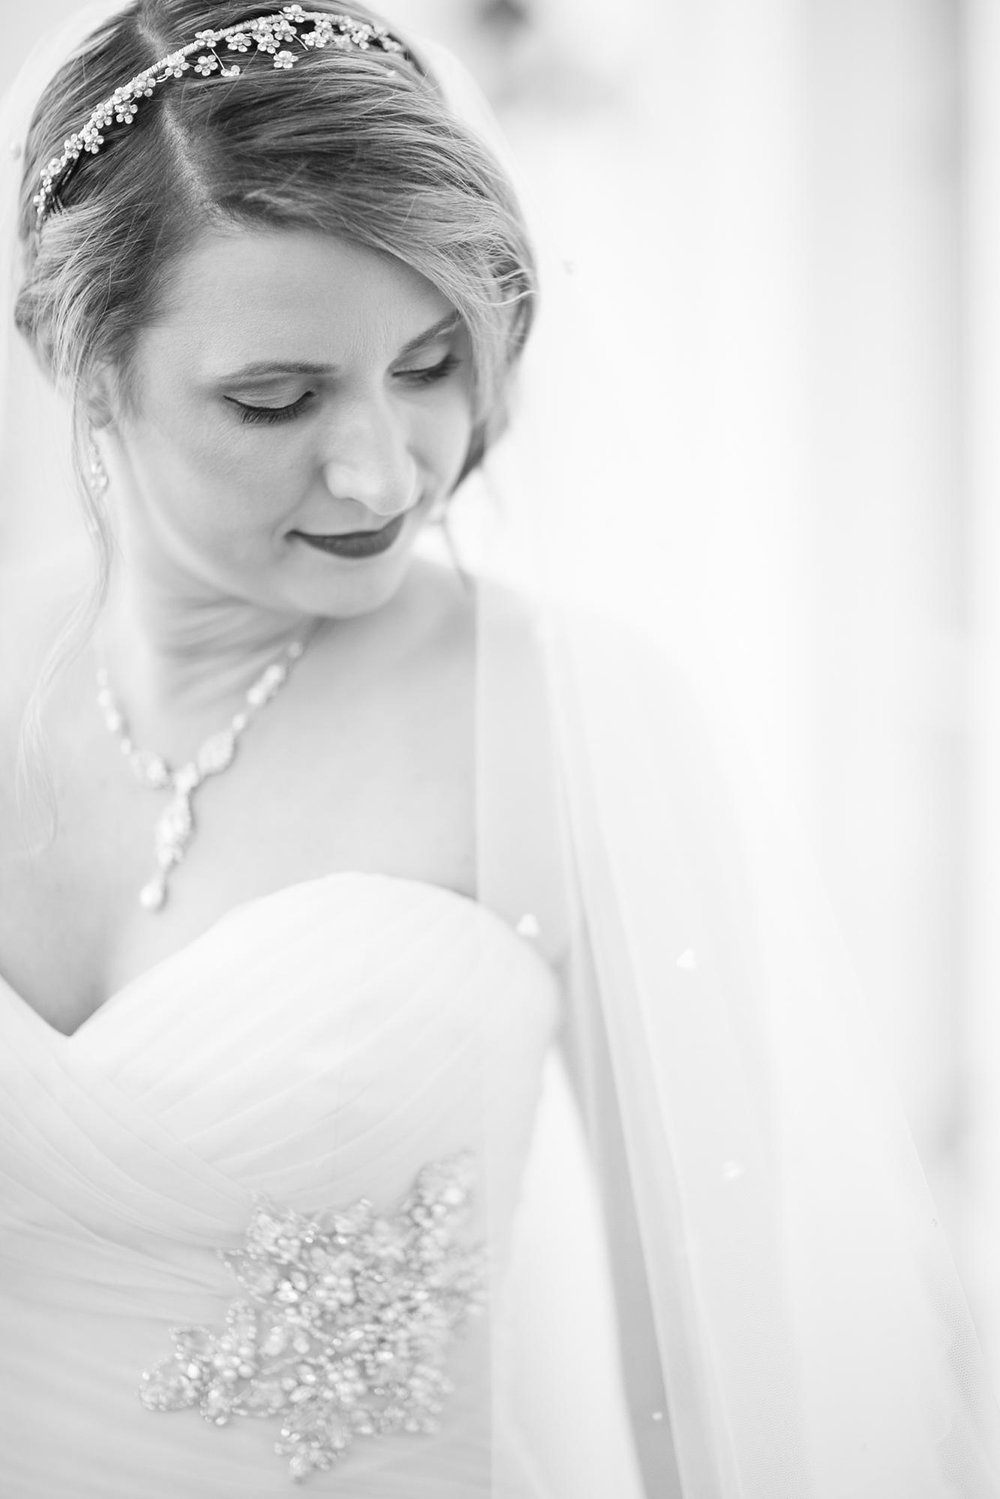 Vibiana Wedding | Miki & Sonja Photography | mikiandsonja.com